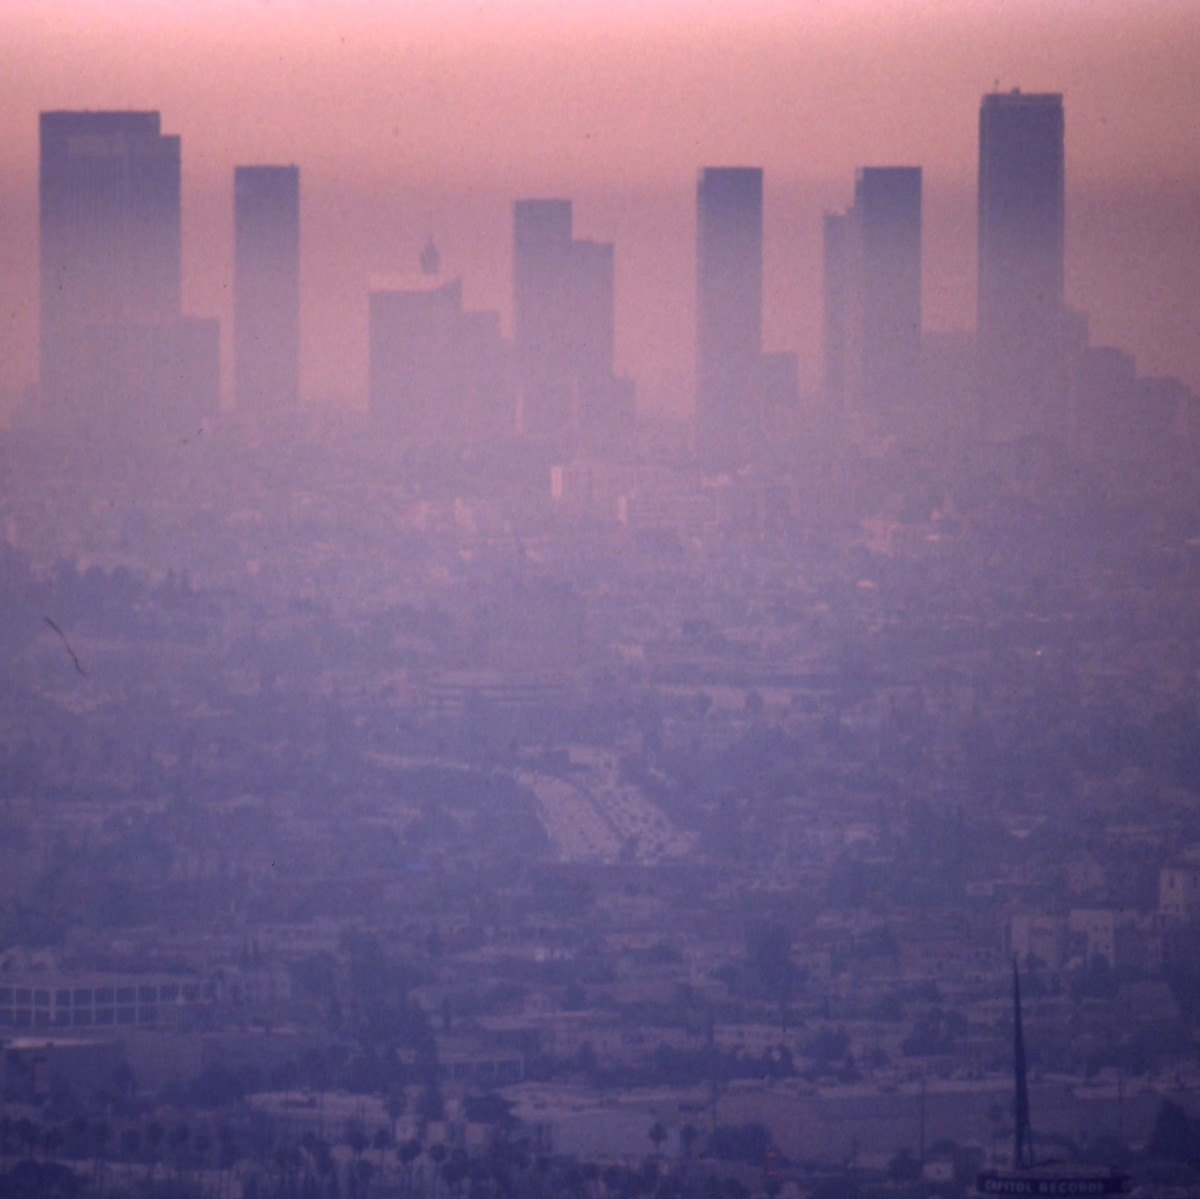 Photos: L.A.'s mid-century smog was so bad, people thought it was a gas attack